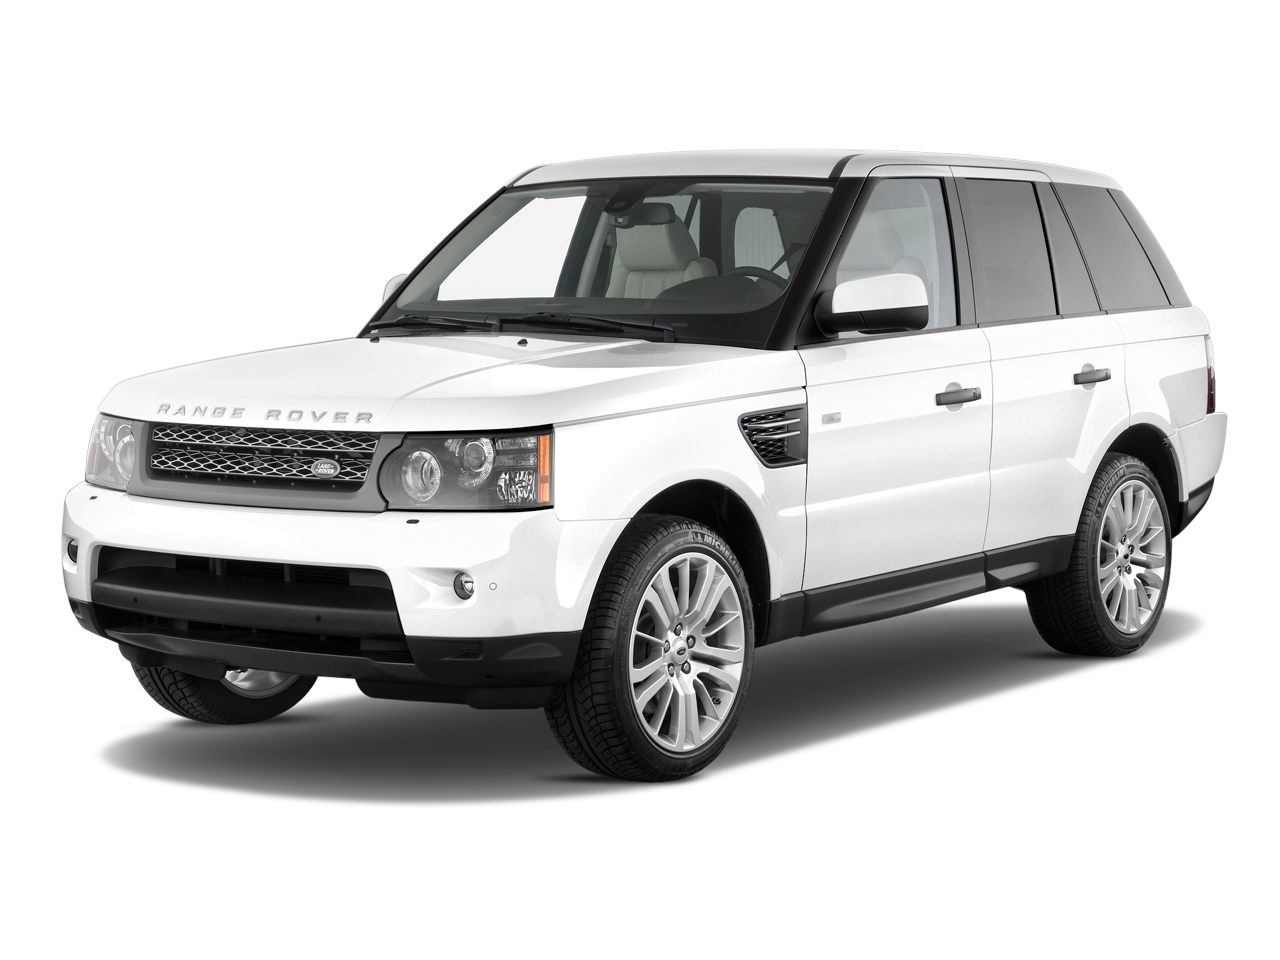 2011 land rover range rover sport review and news. Black Bedroom Furniture Sets. Home Design Ideas